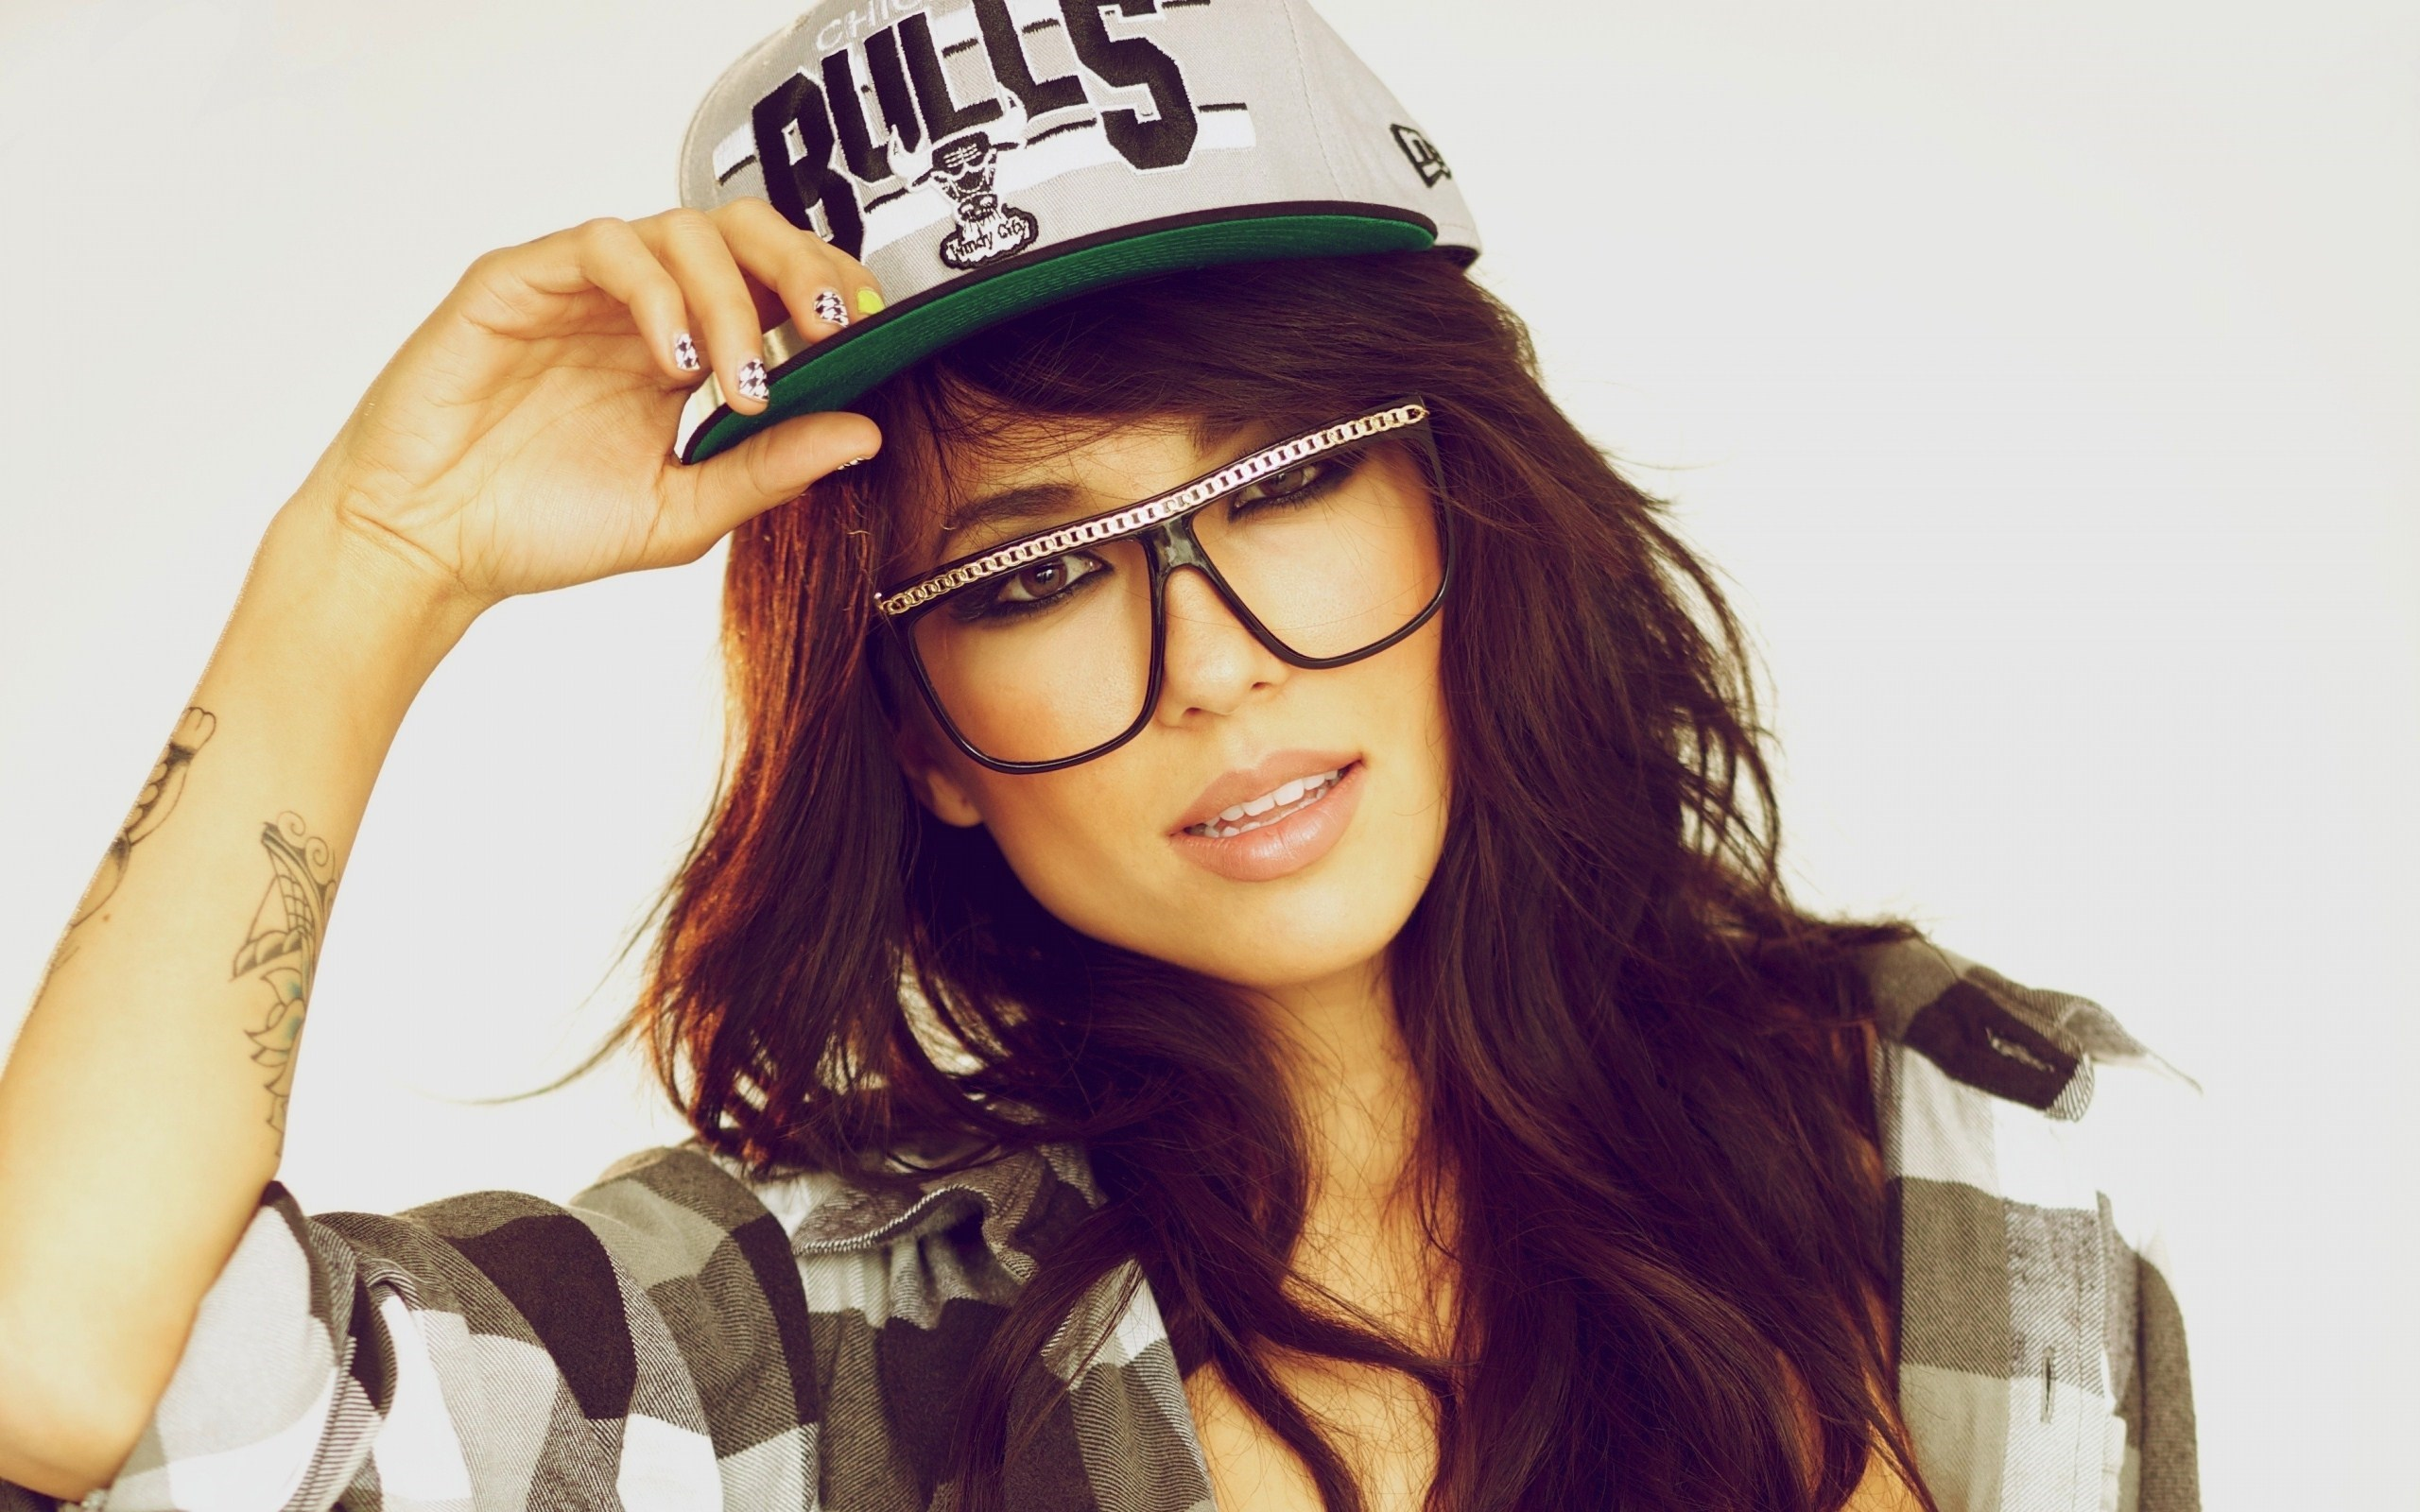 Alie Layus Girl Large Glasses Chicago Bulls Cap HD Wallpaper